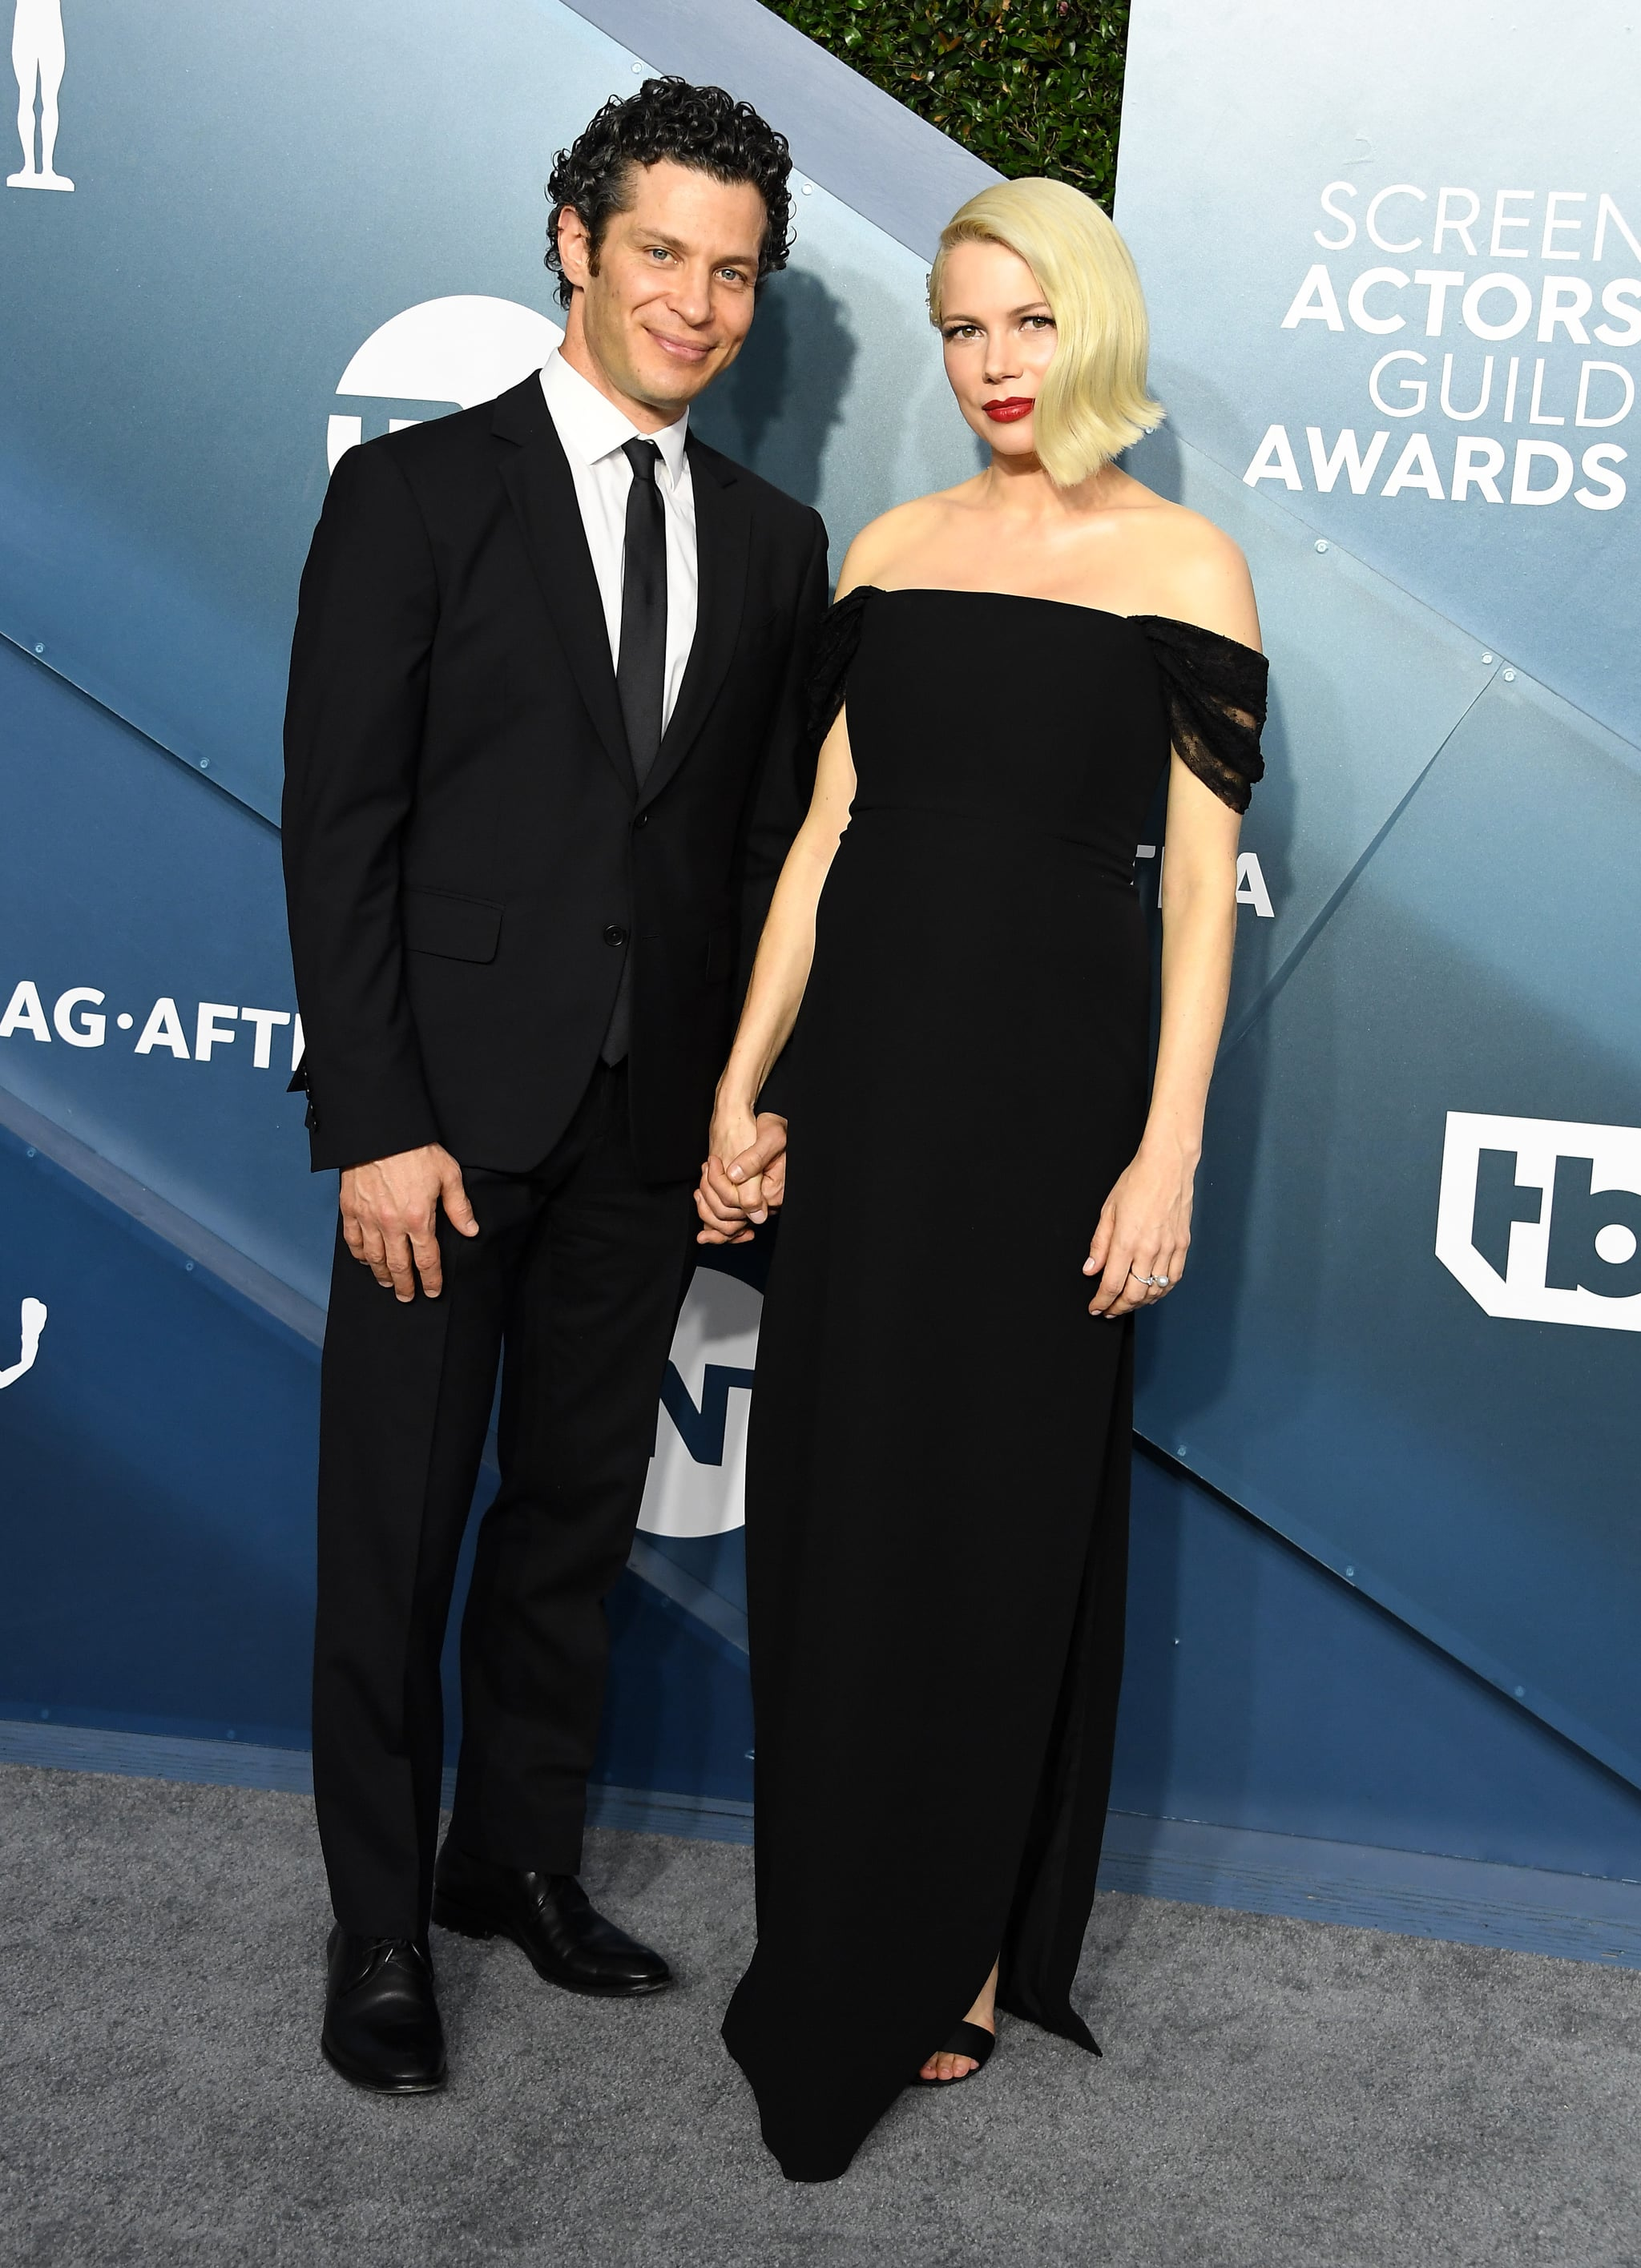 LOS ANGELES, CALIFORNIA - JANUARY 19: Thomas Kail and Michelle Williams arrives at the 26th Annual Screen Actors Guild Awards at The Shrine Auditorium on January 19, 2020 in Los Angeles, California. (Photo by Steve Granitz/WireImage)